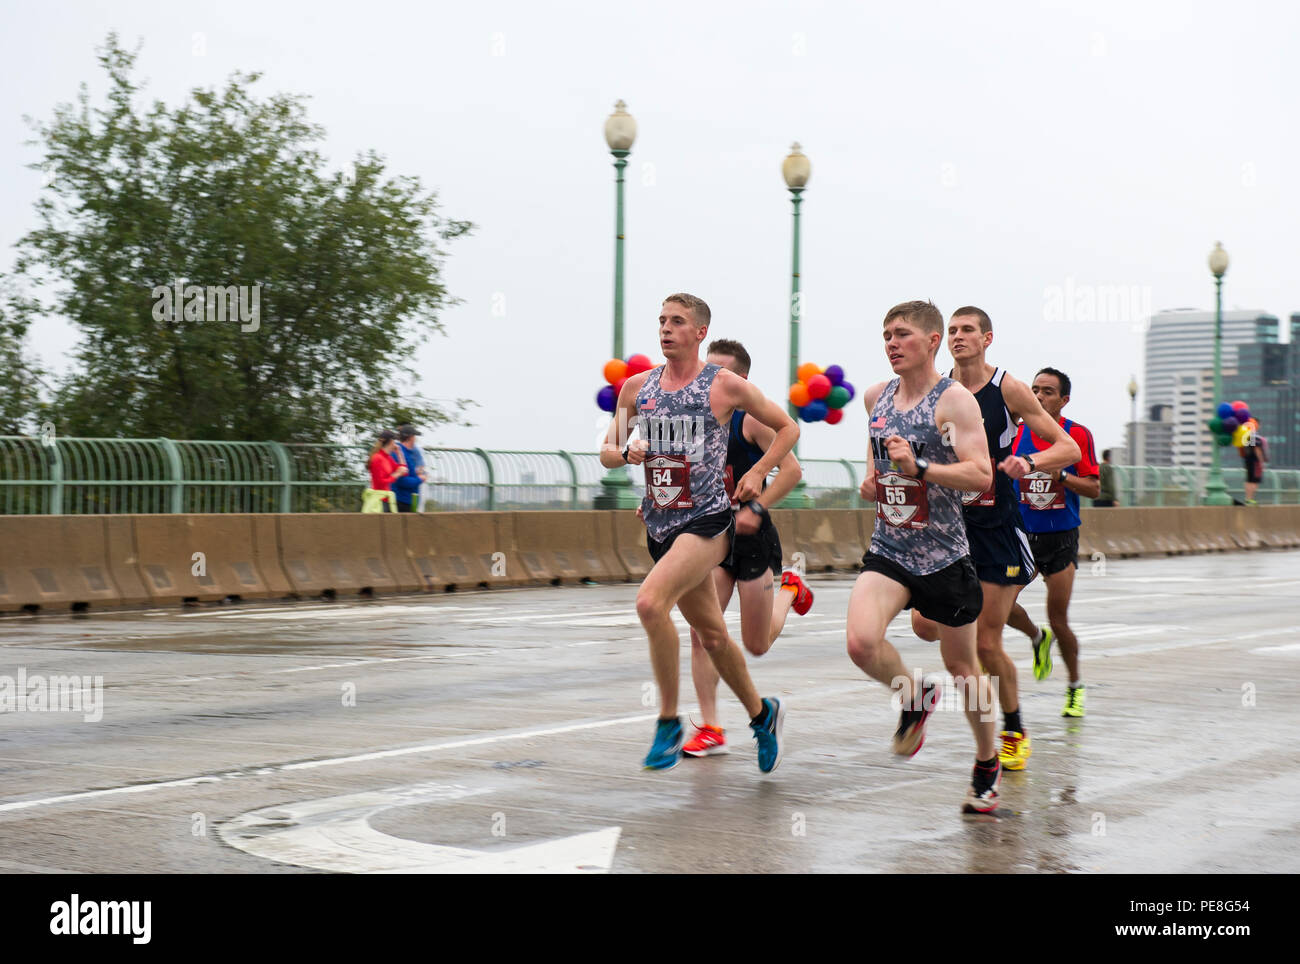 two-members-of-the-u-s-army-running-team-trevor-lafontaine-54-from-cornwall-n-y-and-daniel-schlich-55-from-saint-robert-mo-cross-the-francis